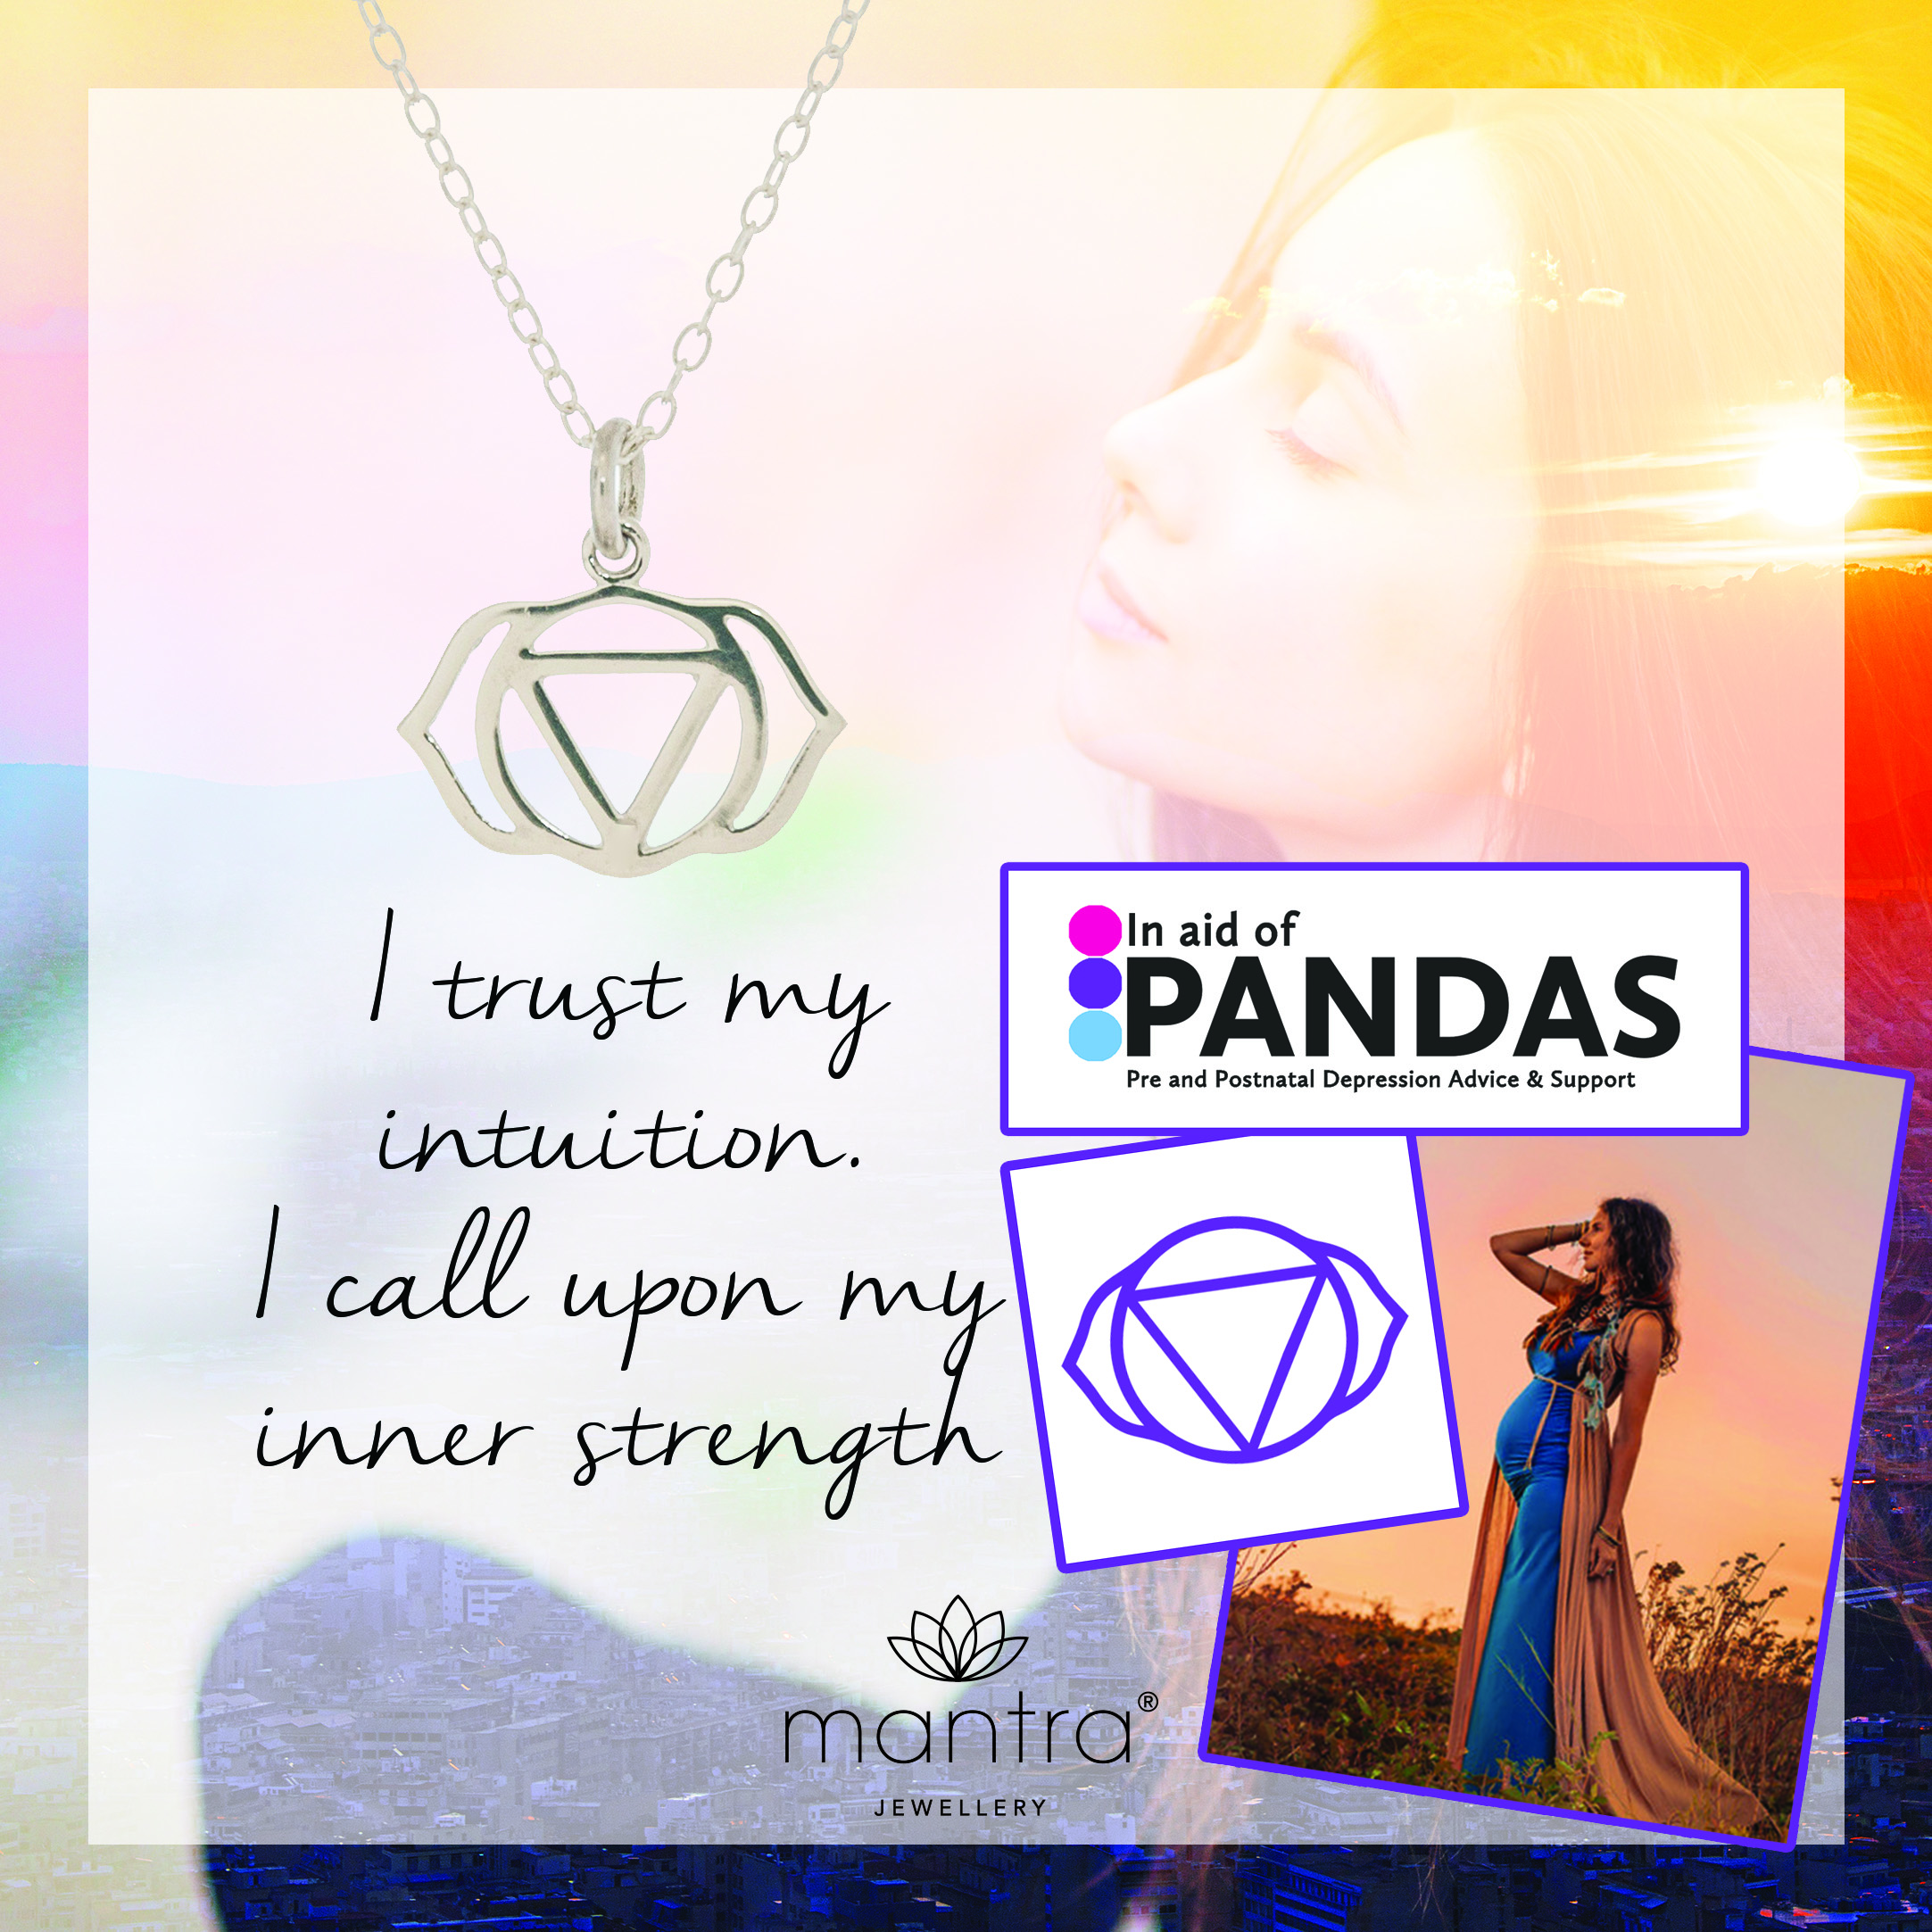 Third Eye Chakra Necklace for PANDAS Charity